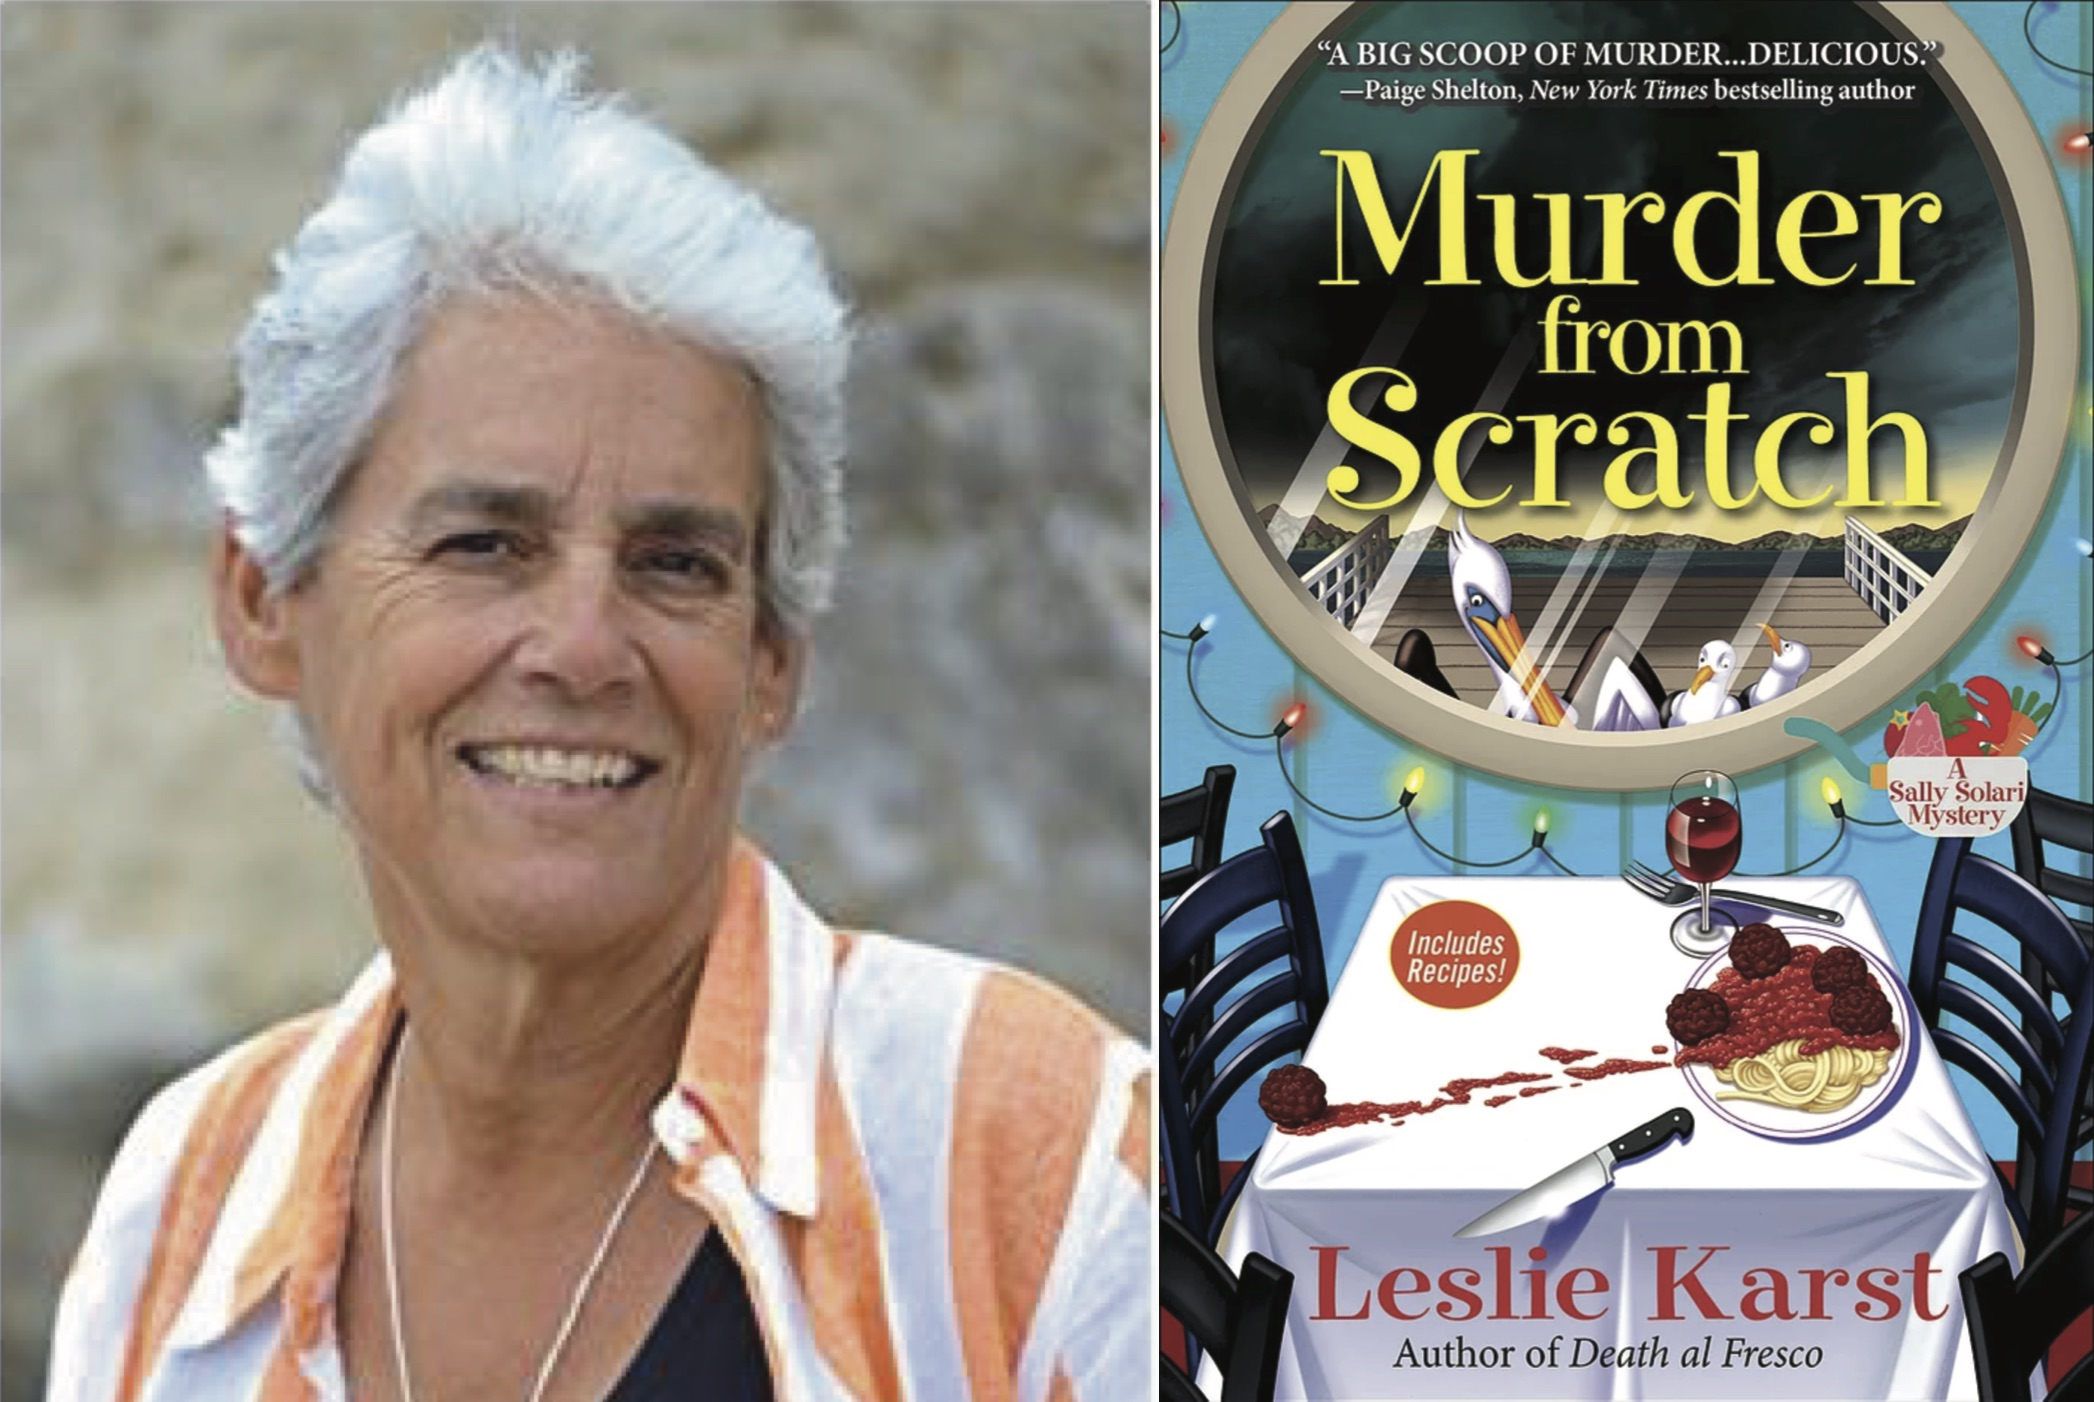 Leslie Karst, Murder from Scratch